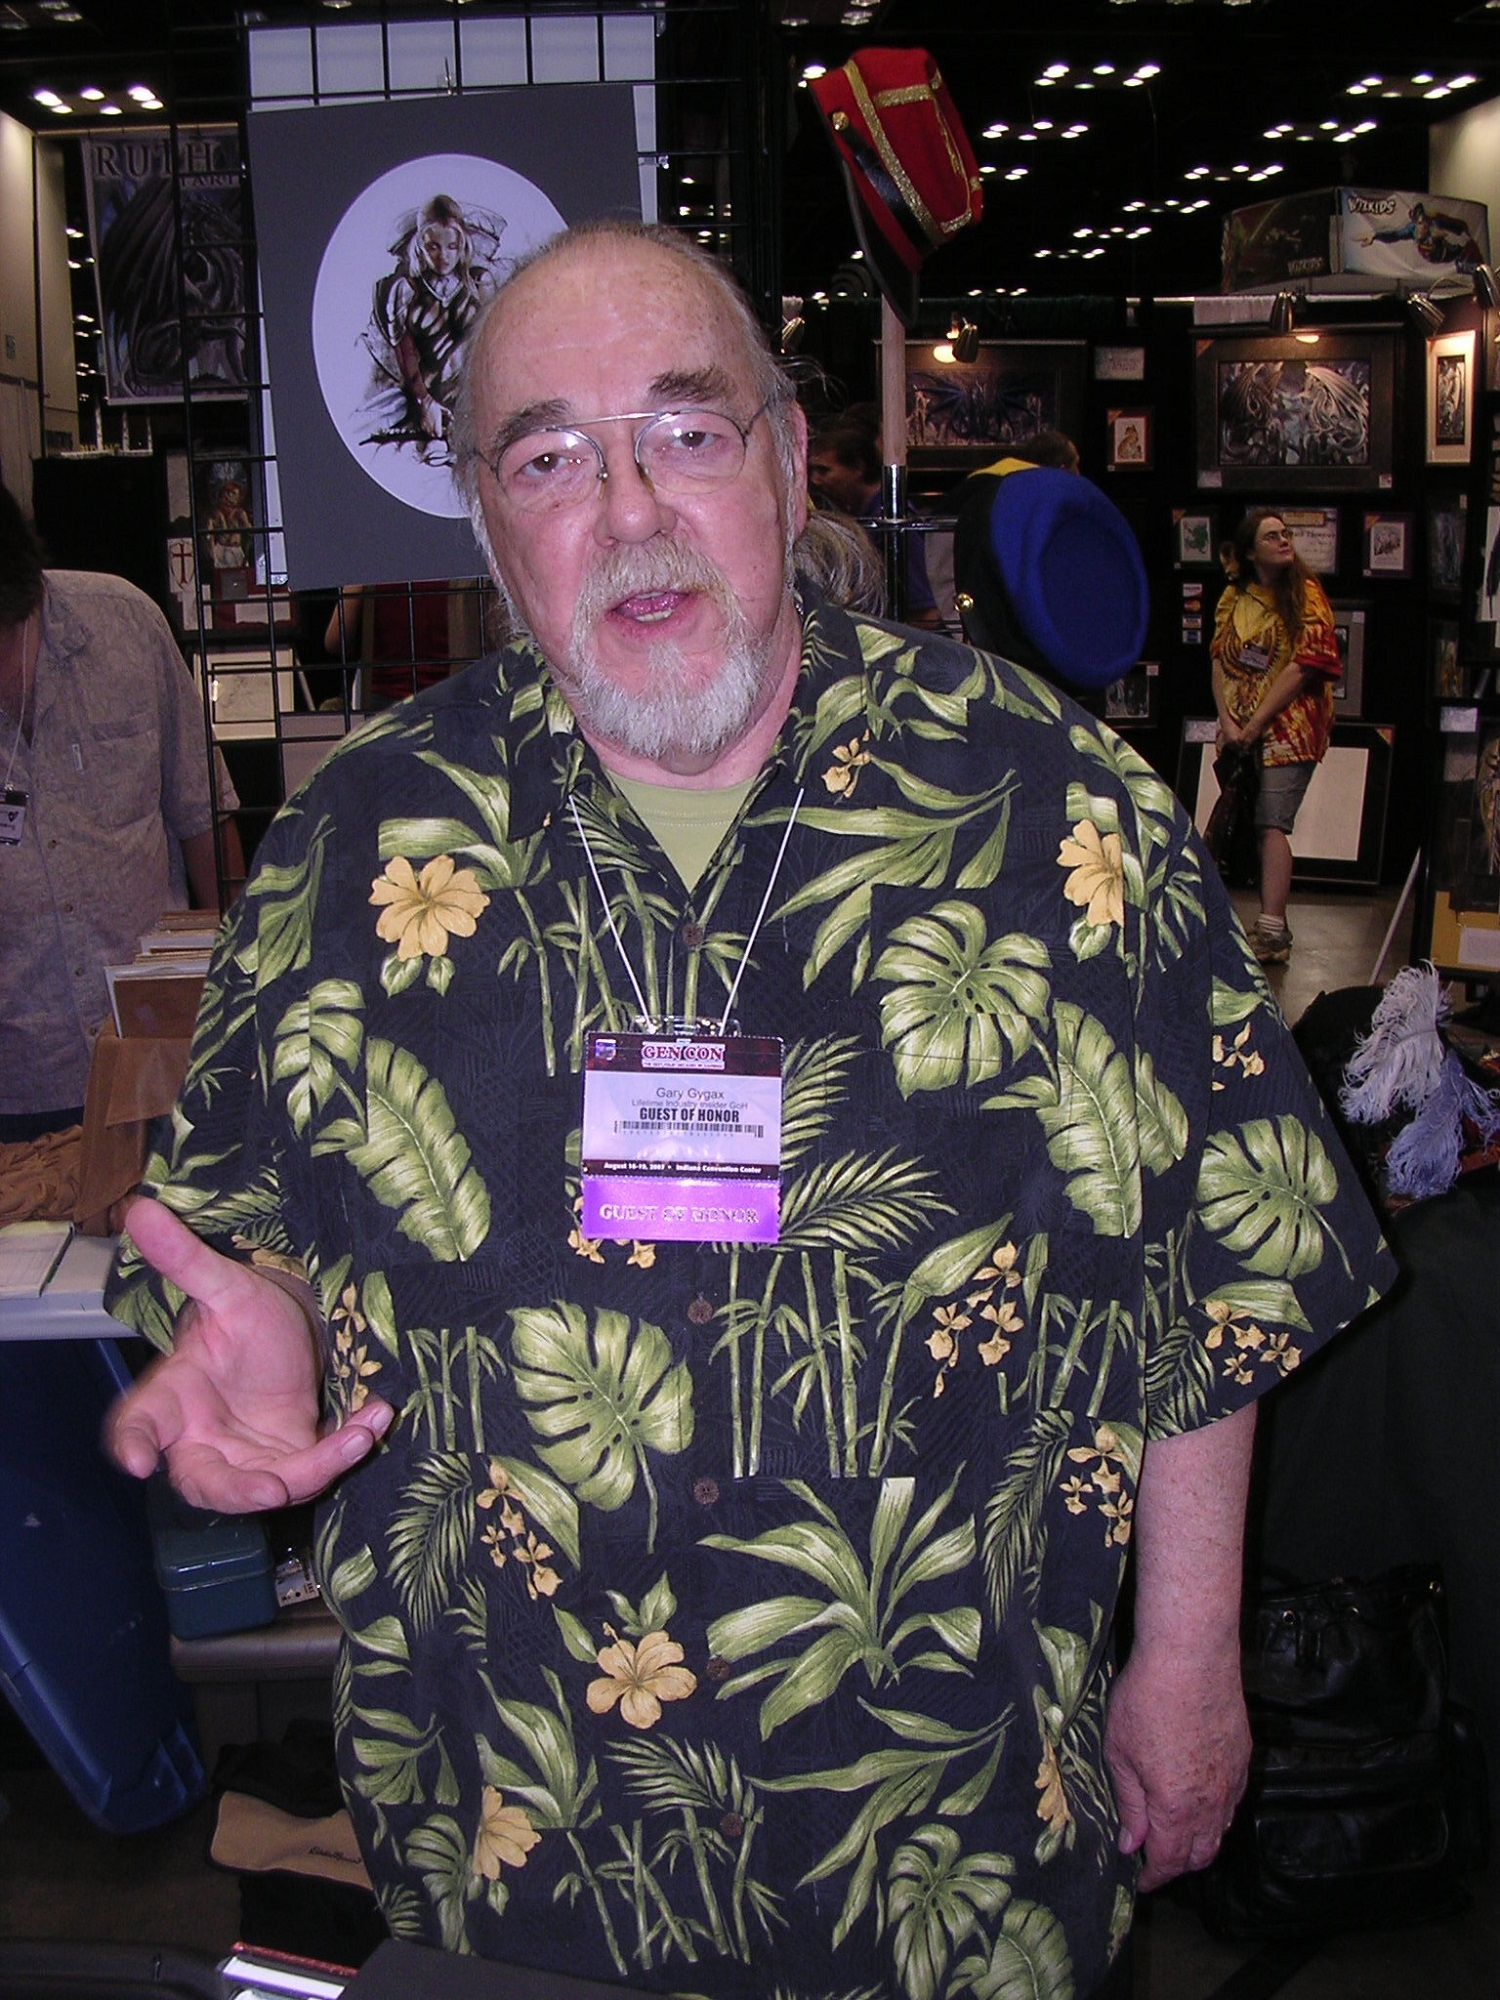 Gary Gygax, creator of DND and TSR at Gen Con Indy 2007